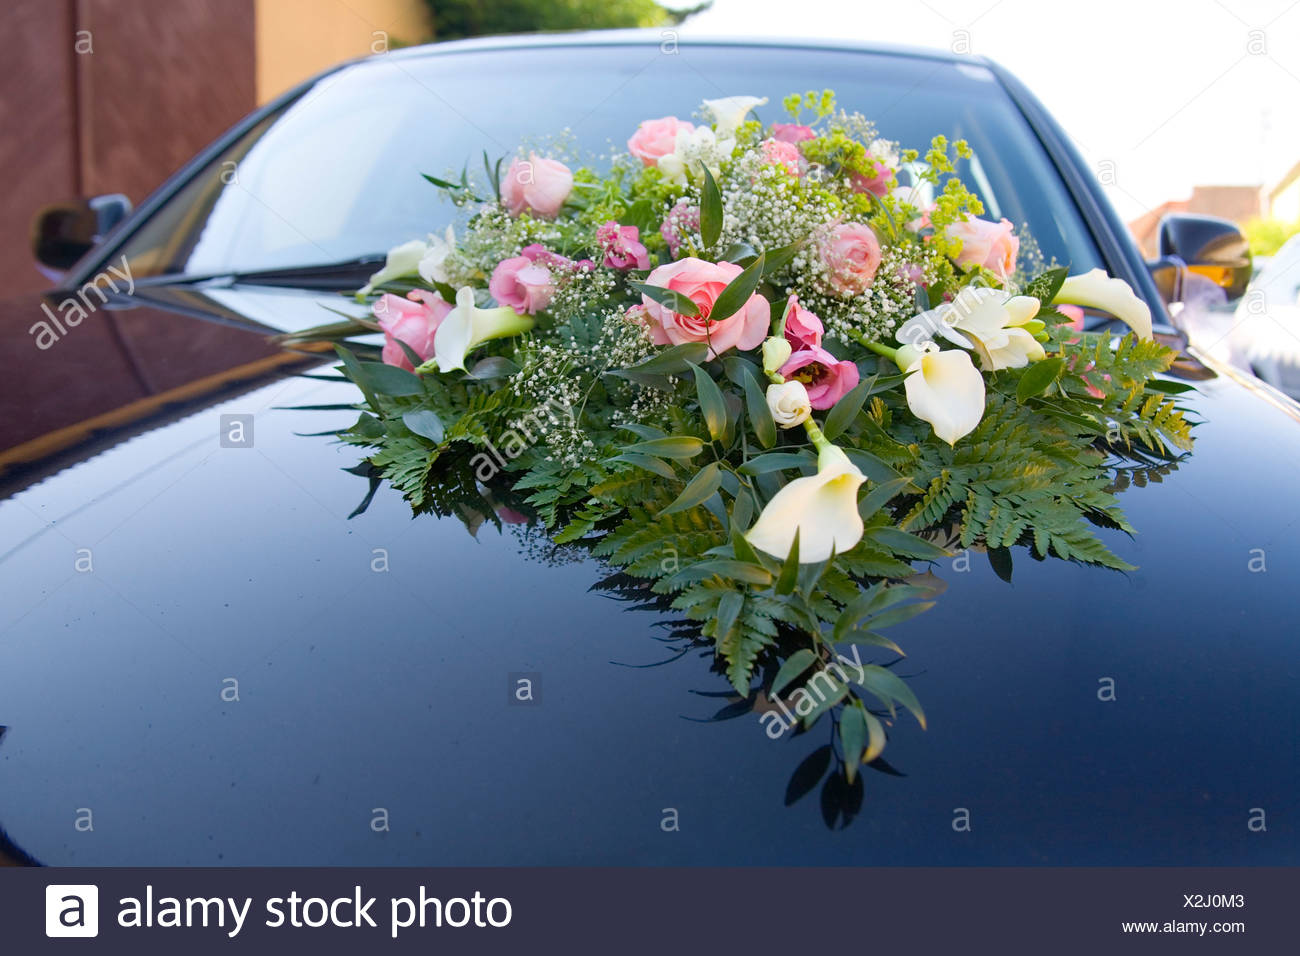 Flower bouquet on a car - Stock Image